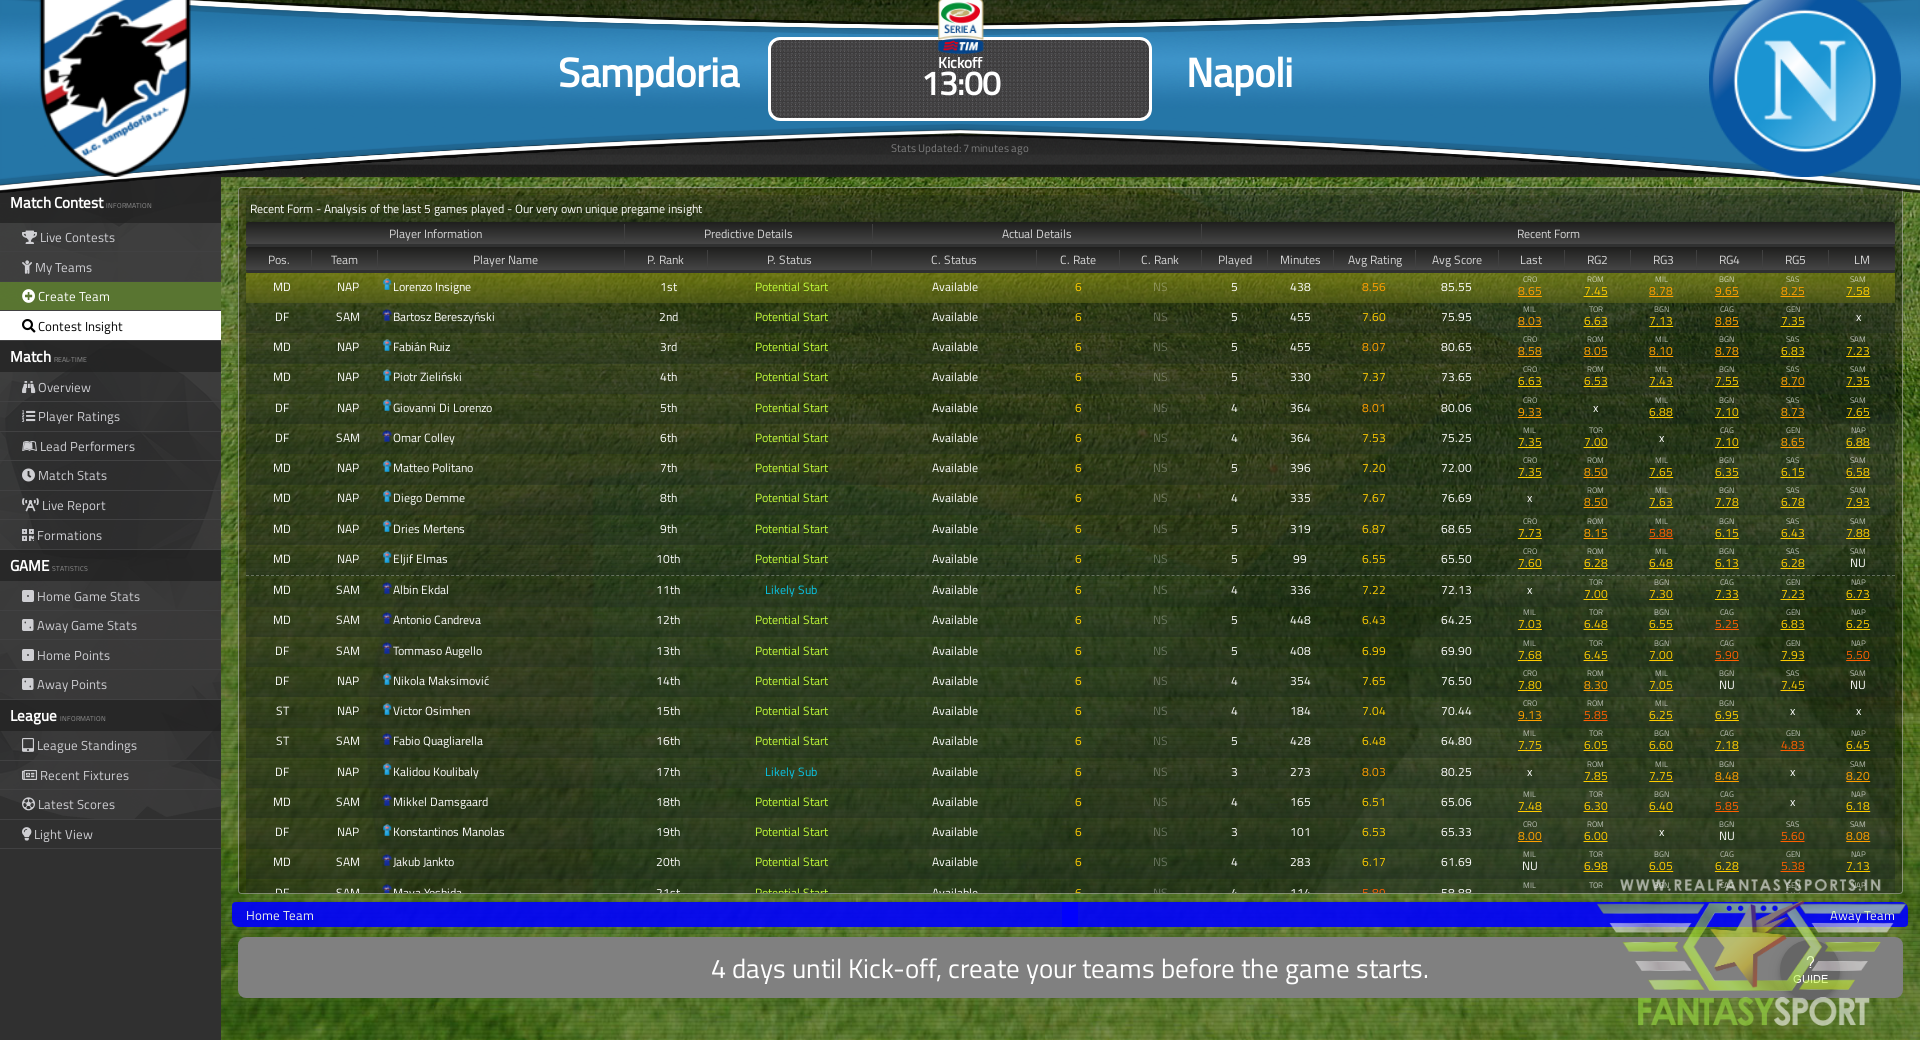 Fantasy Football Sampdoria Vs Napoli Sunday 11th April 2021